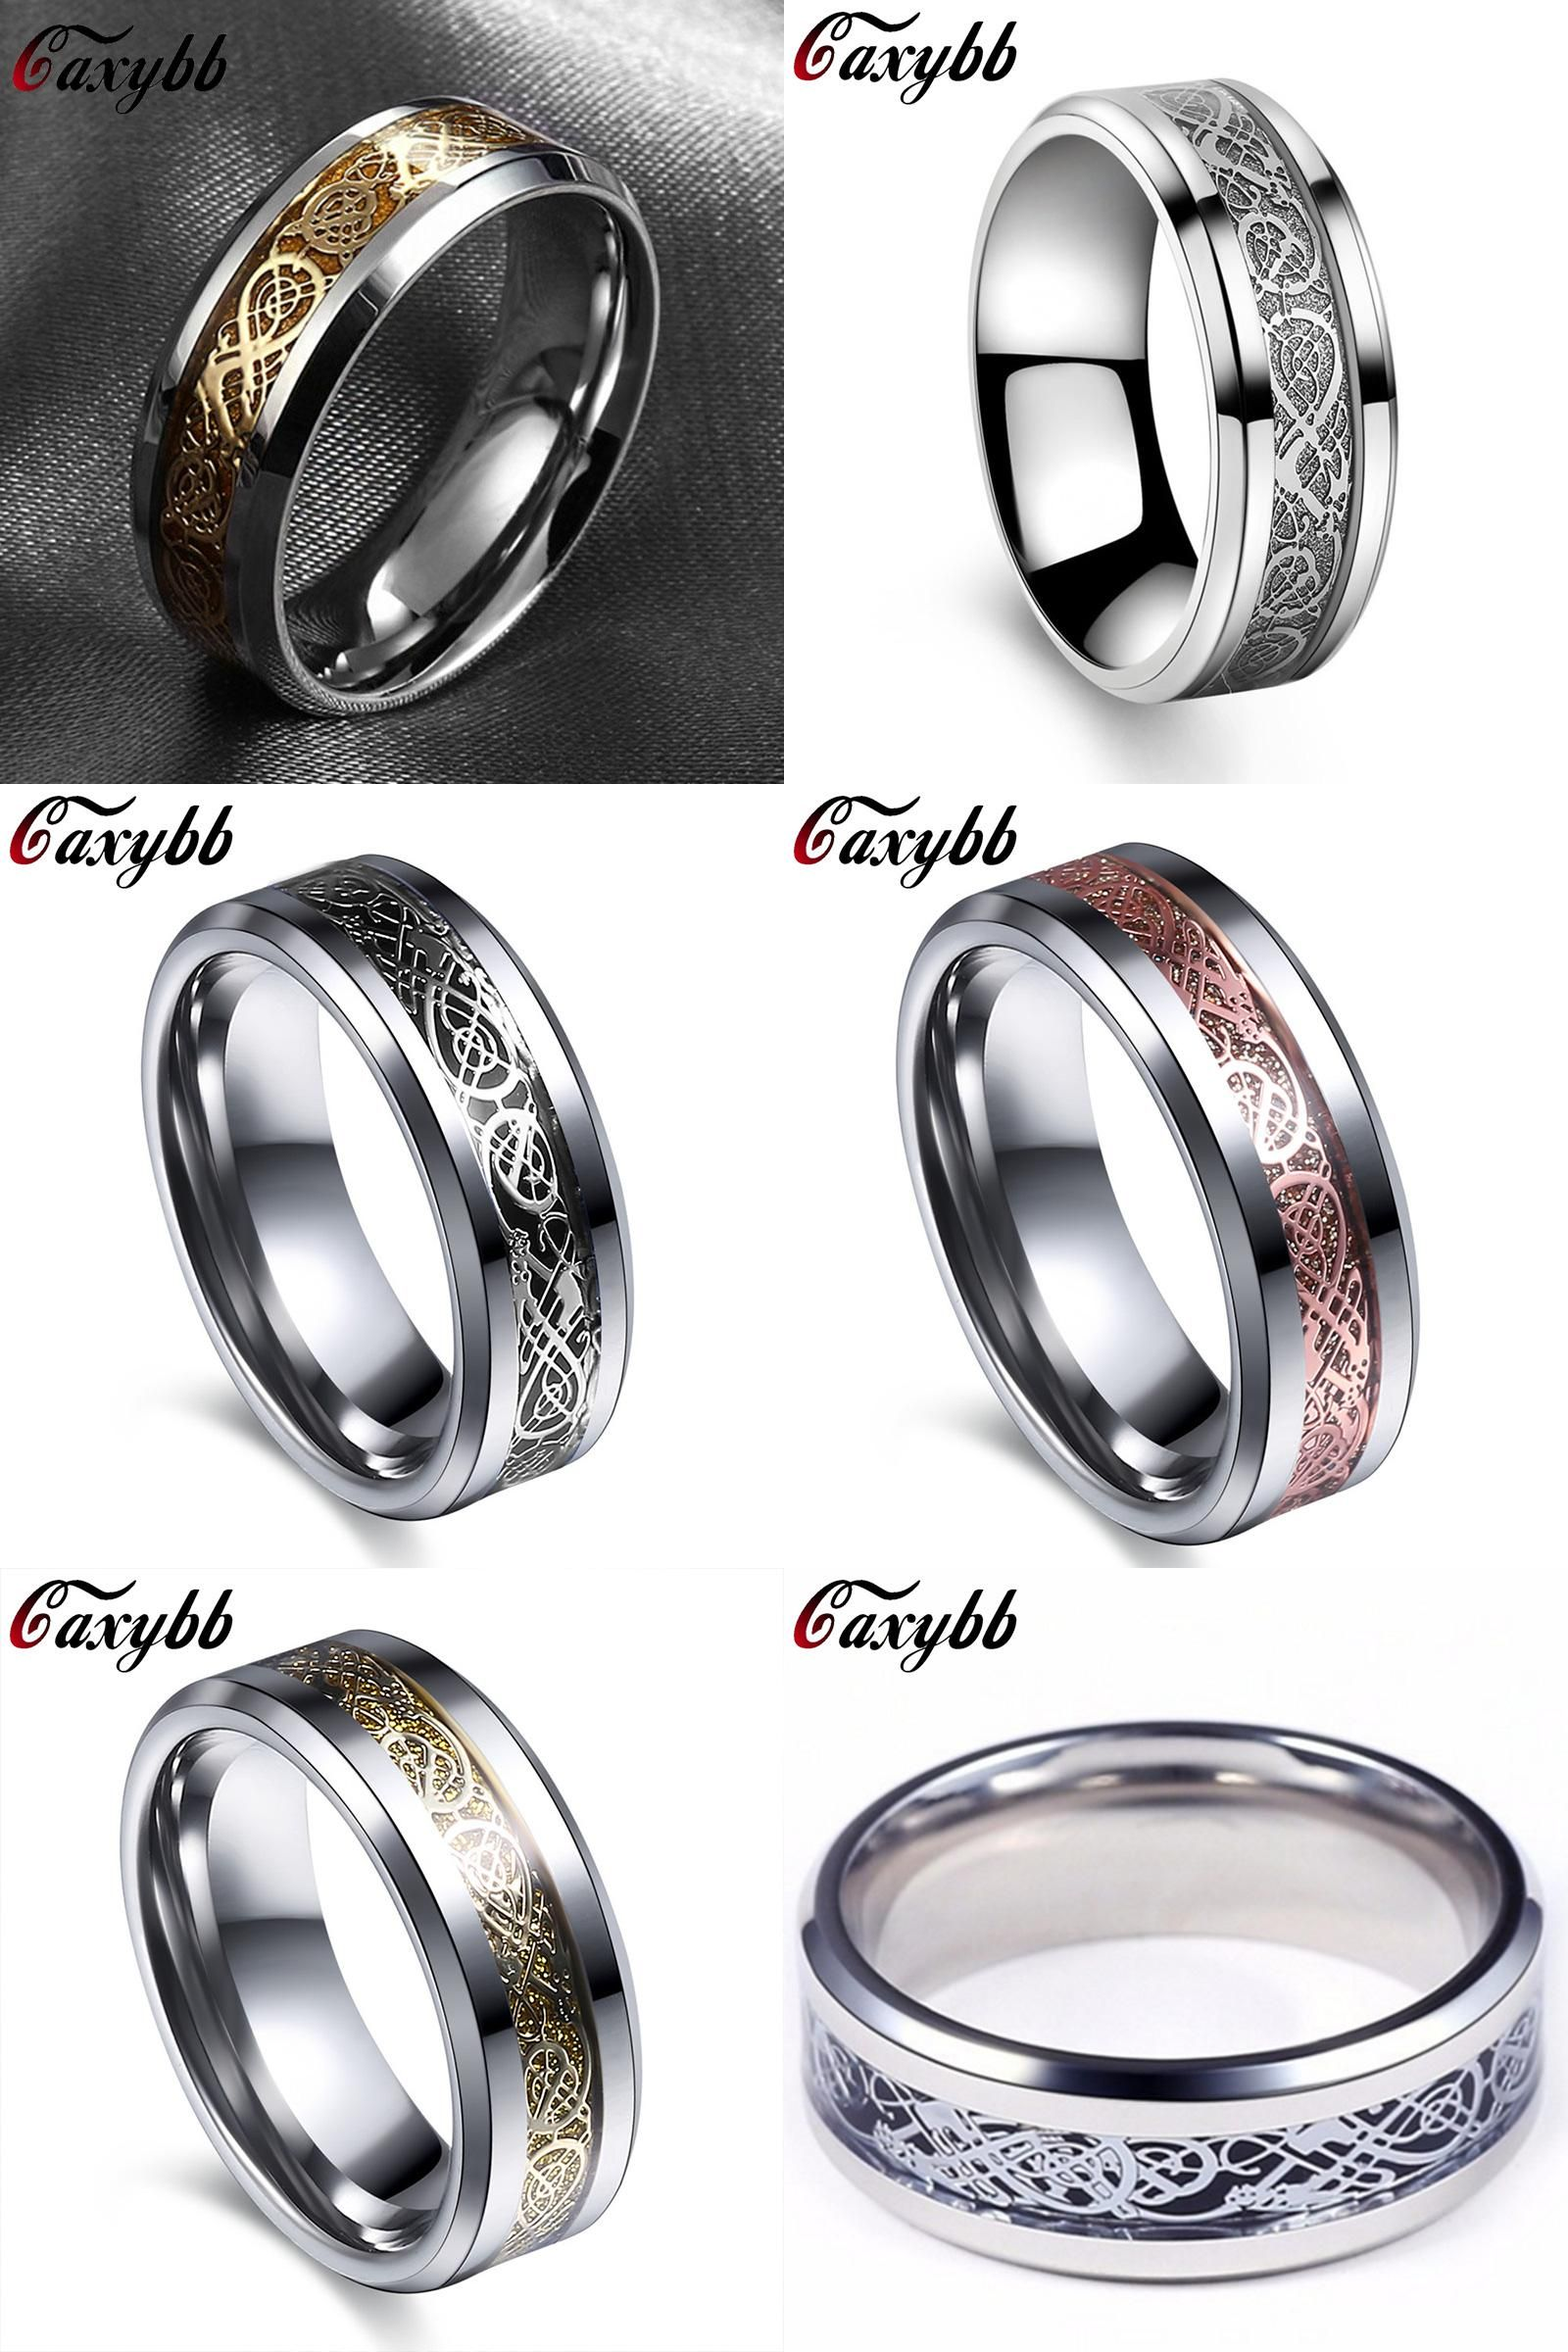 Visit to Buy] Gaxybb Stainless steel dragon ring fine jewelry how